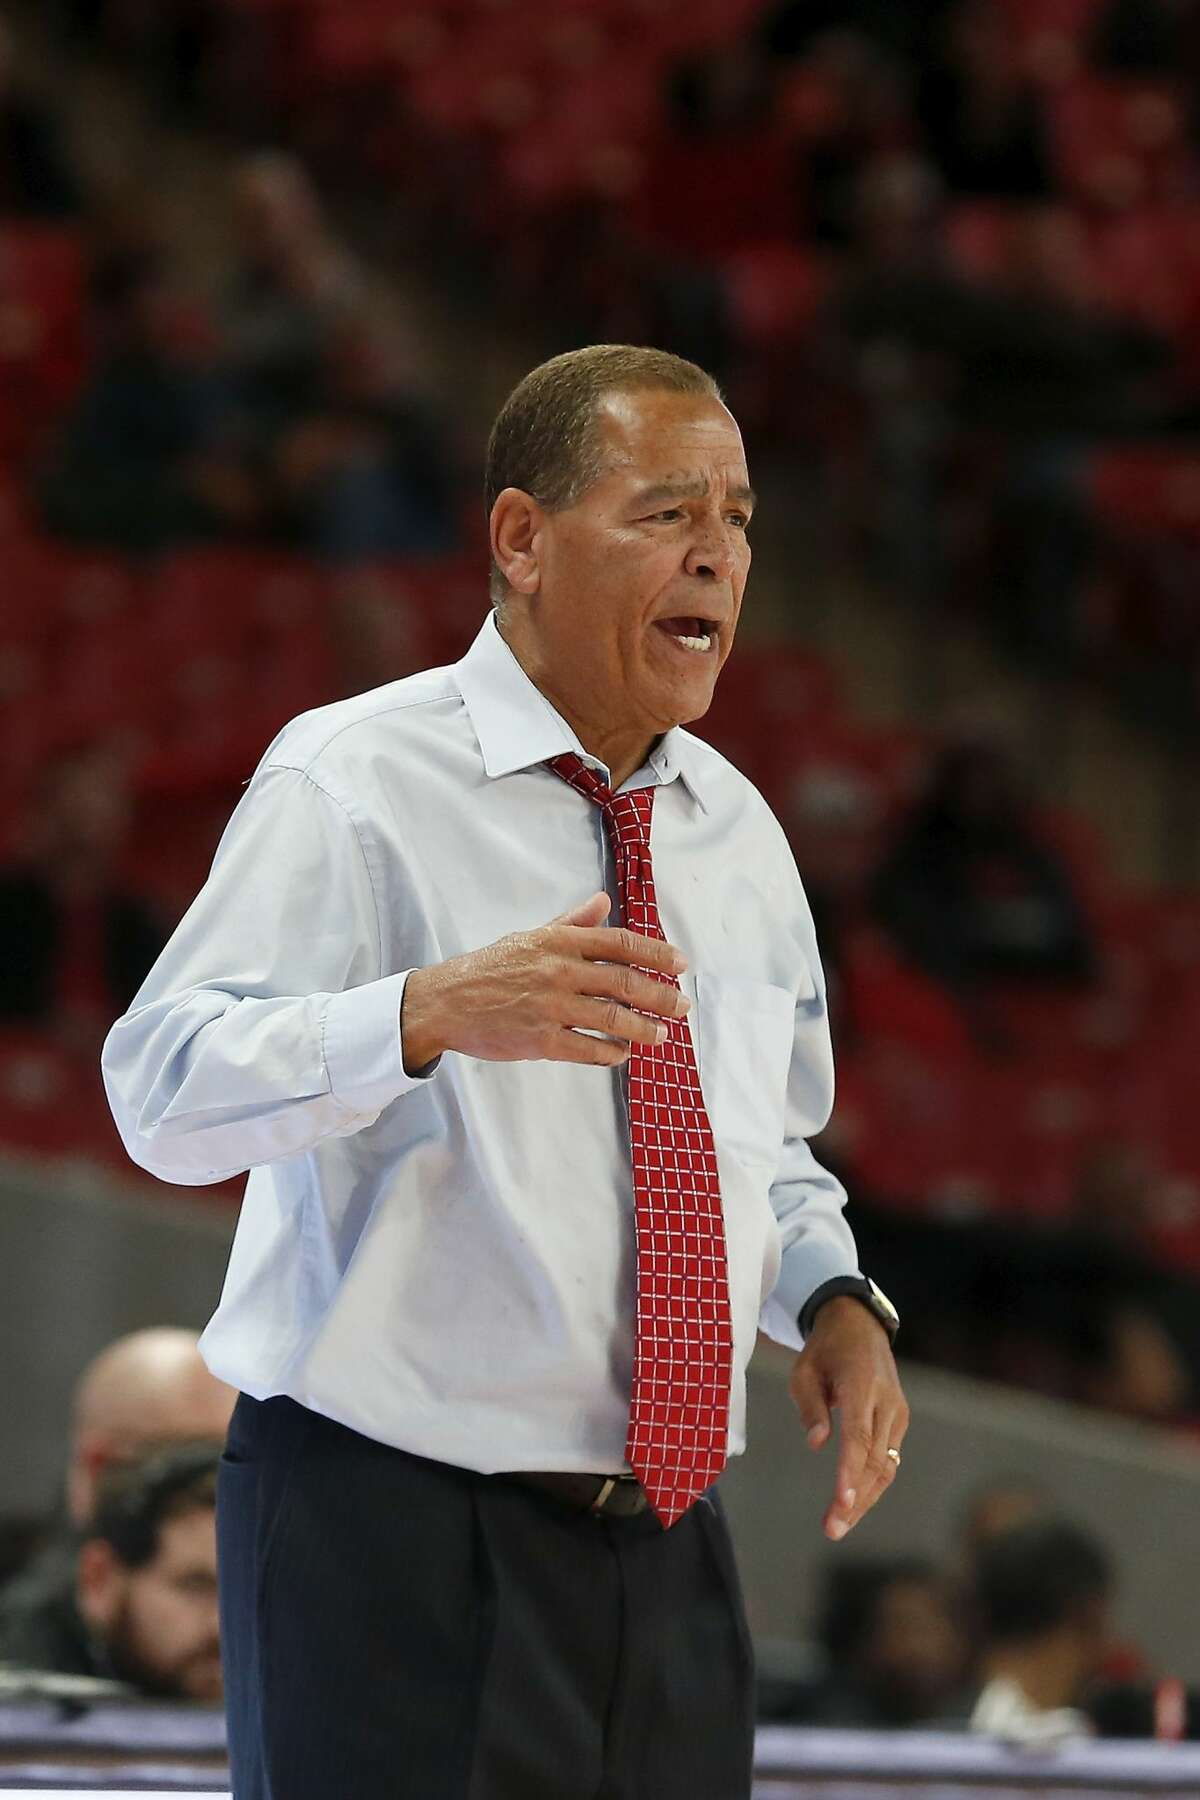 Houston Cougars head coach Kelvin Sampson reacts during second half of the NCAA basketball game between the Houston Cougars and the Alabama State Hornets at the Fertitta Center in Houston, TX on Tuesday, November 12, 2019.